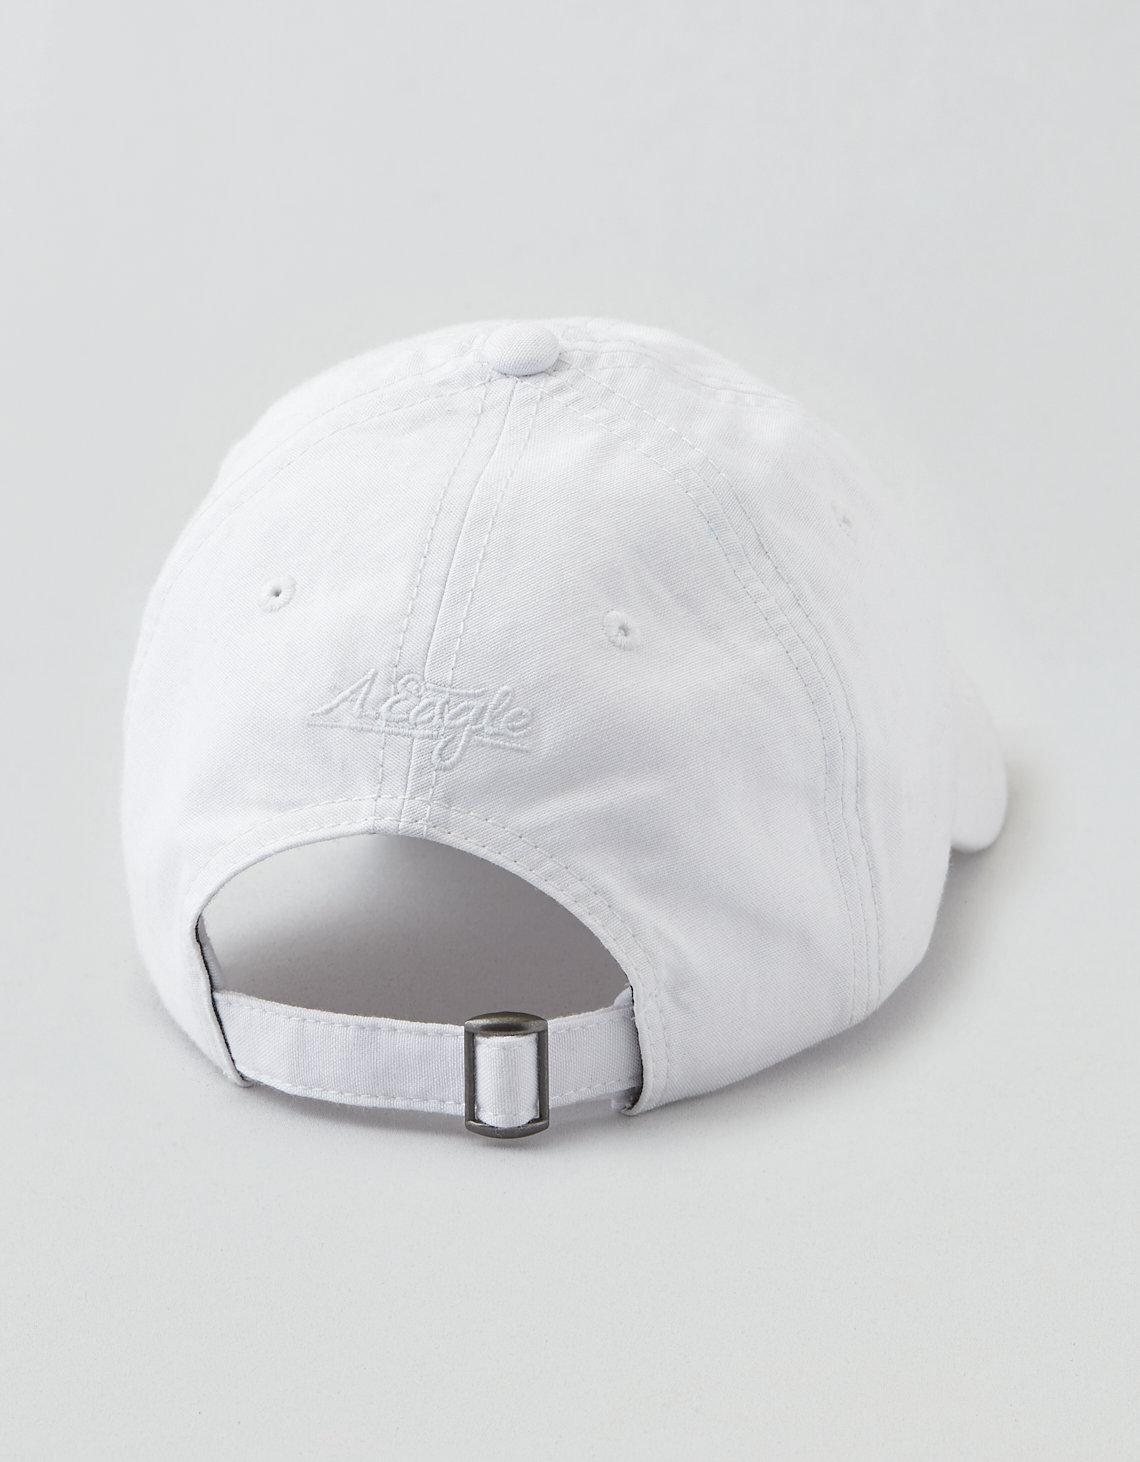 Lyst - American Eagle Ae Chambray Hat in White for Men 7c1483abf52d